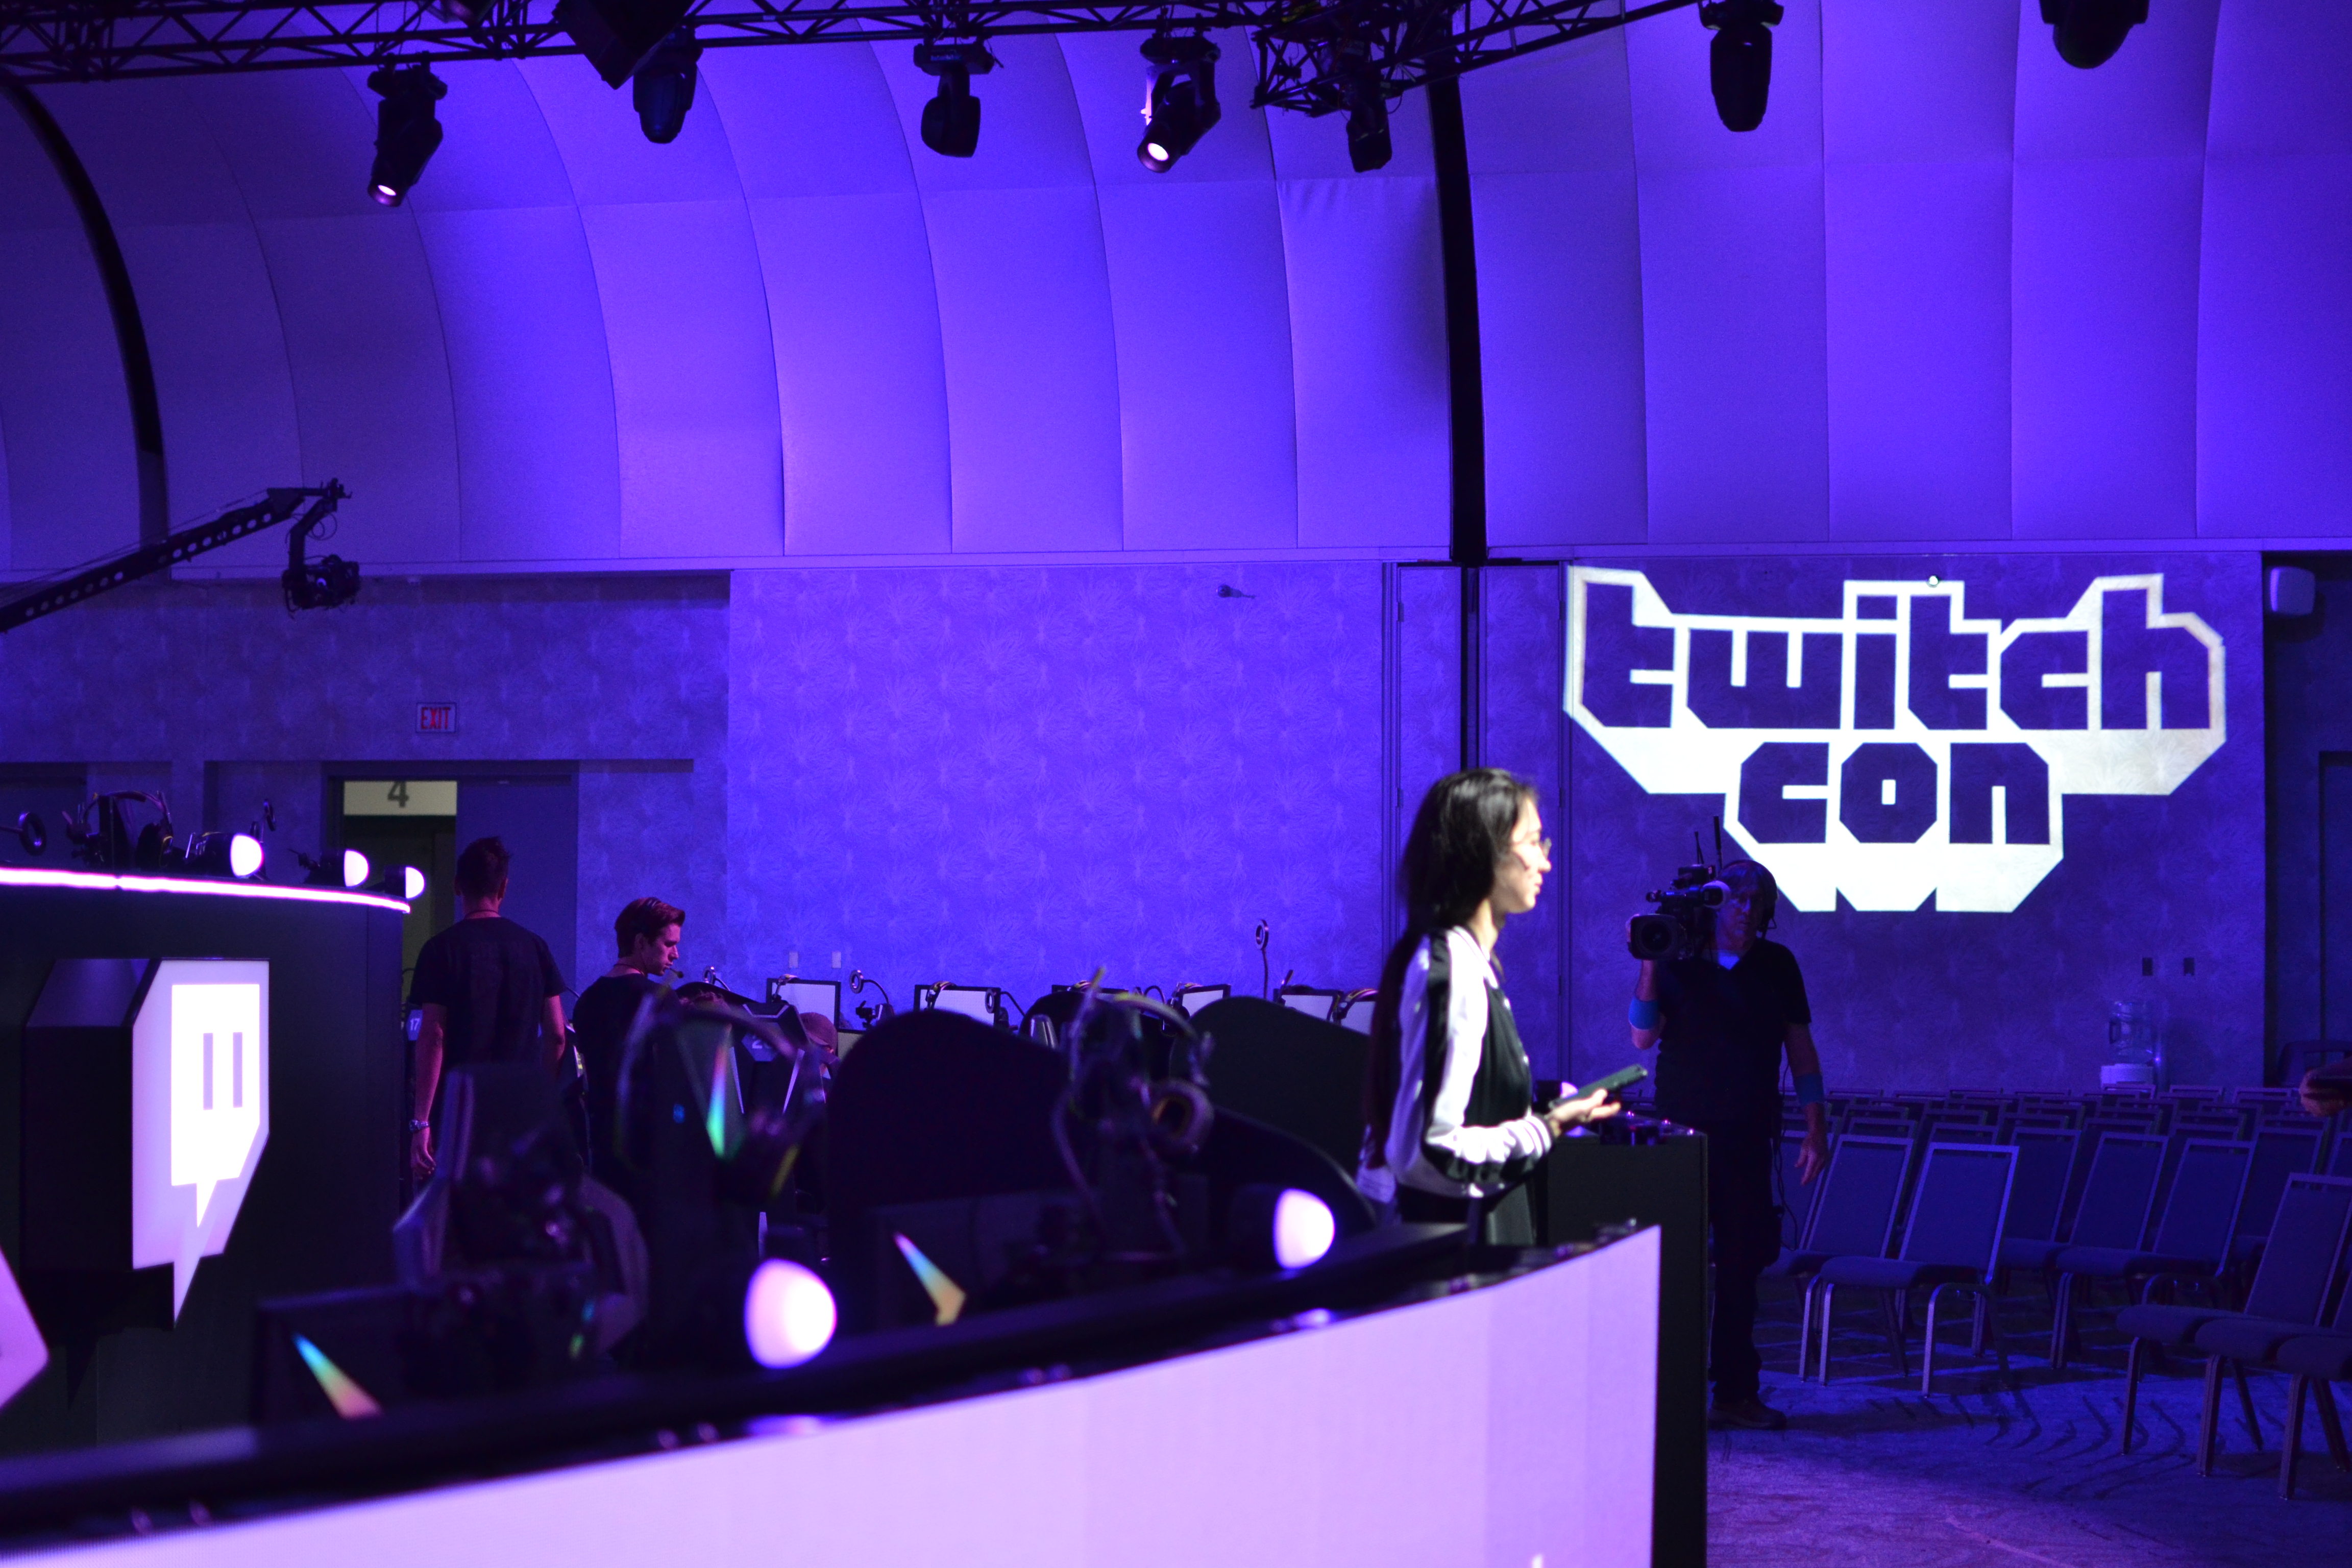 TwitchCon Comes To San Diego, Bringing Gamers, Fans To Budding Local Esports Industry